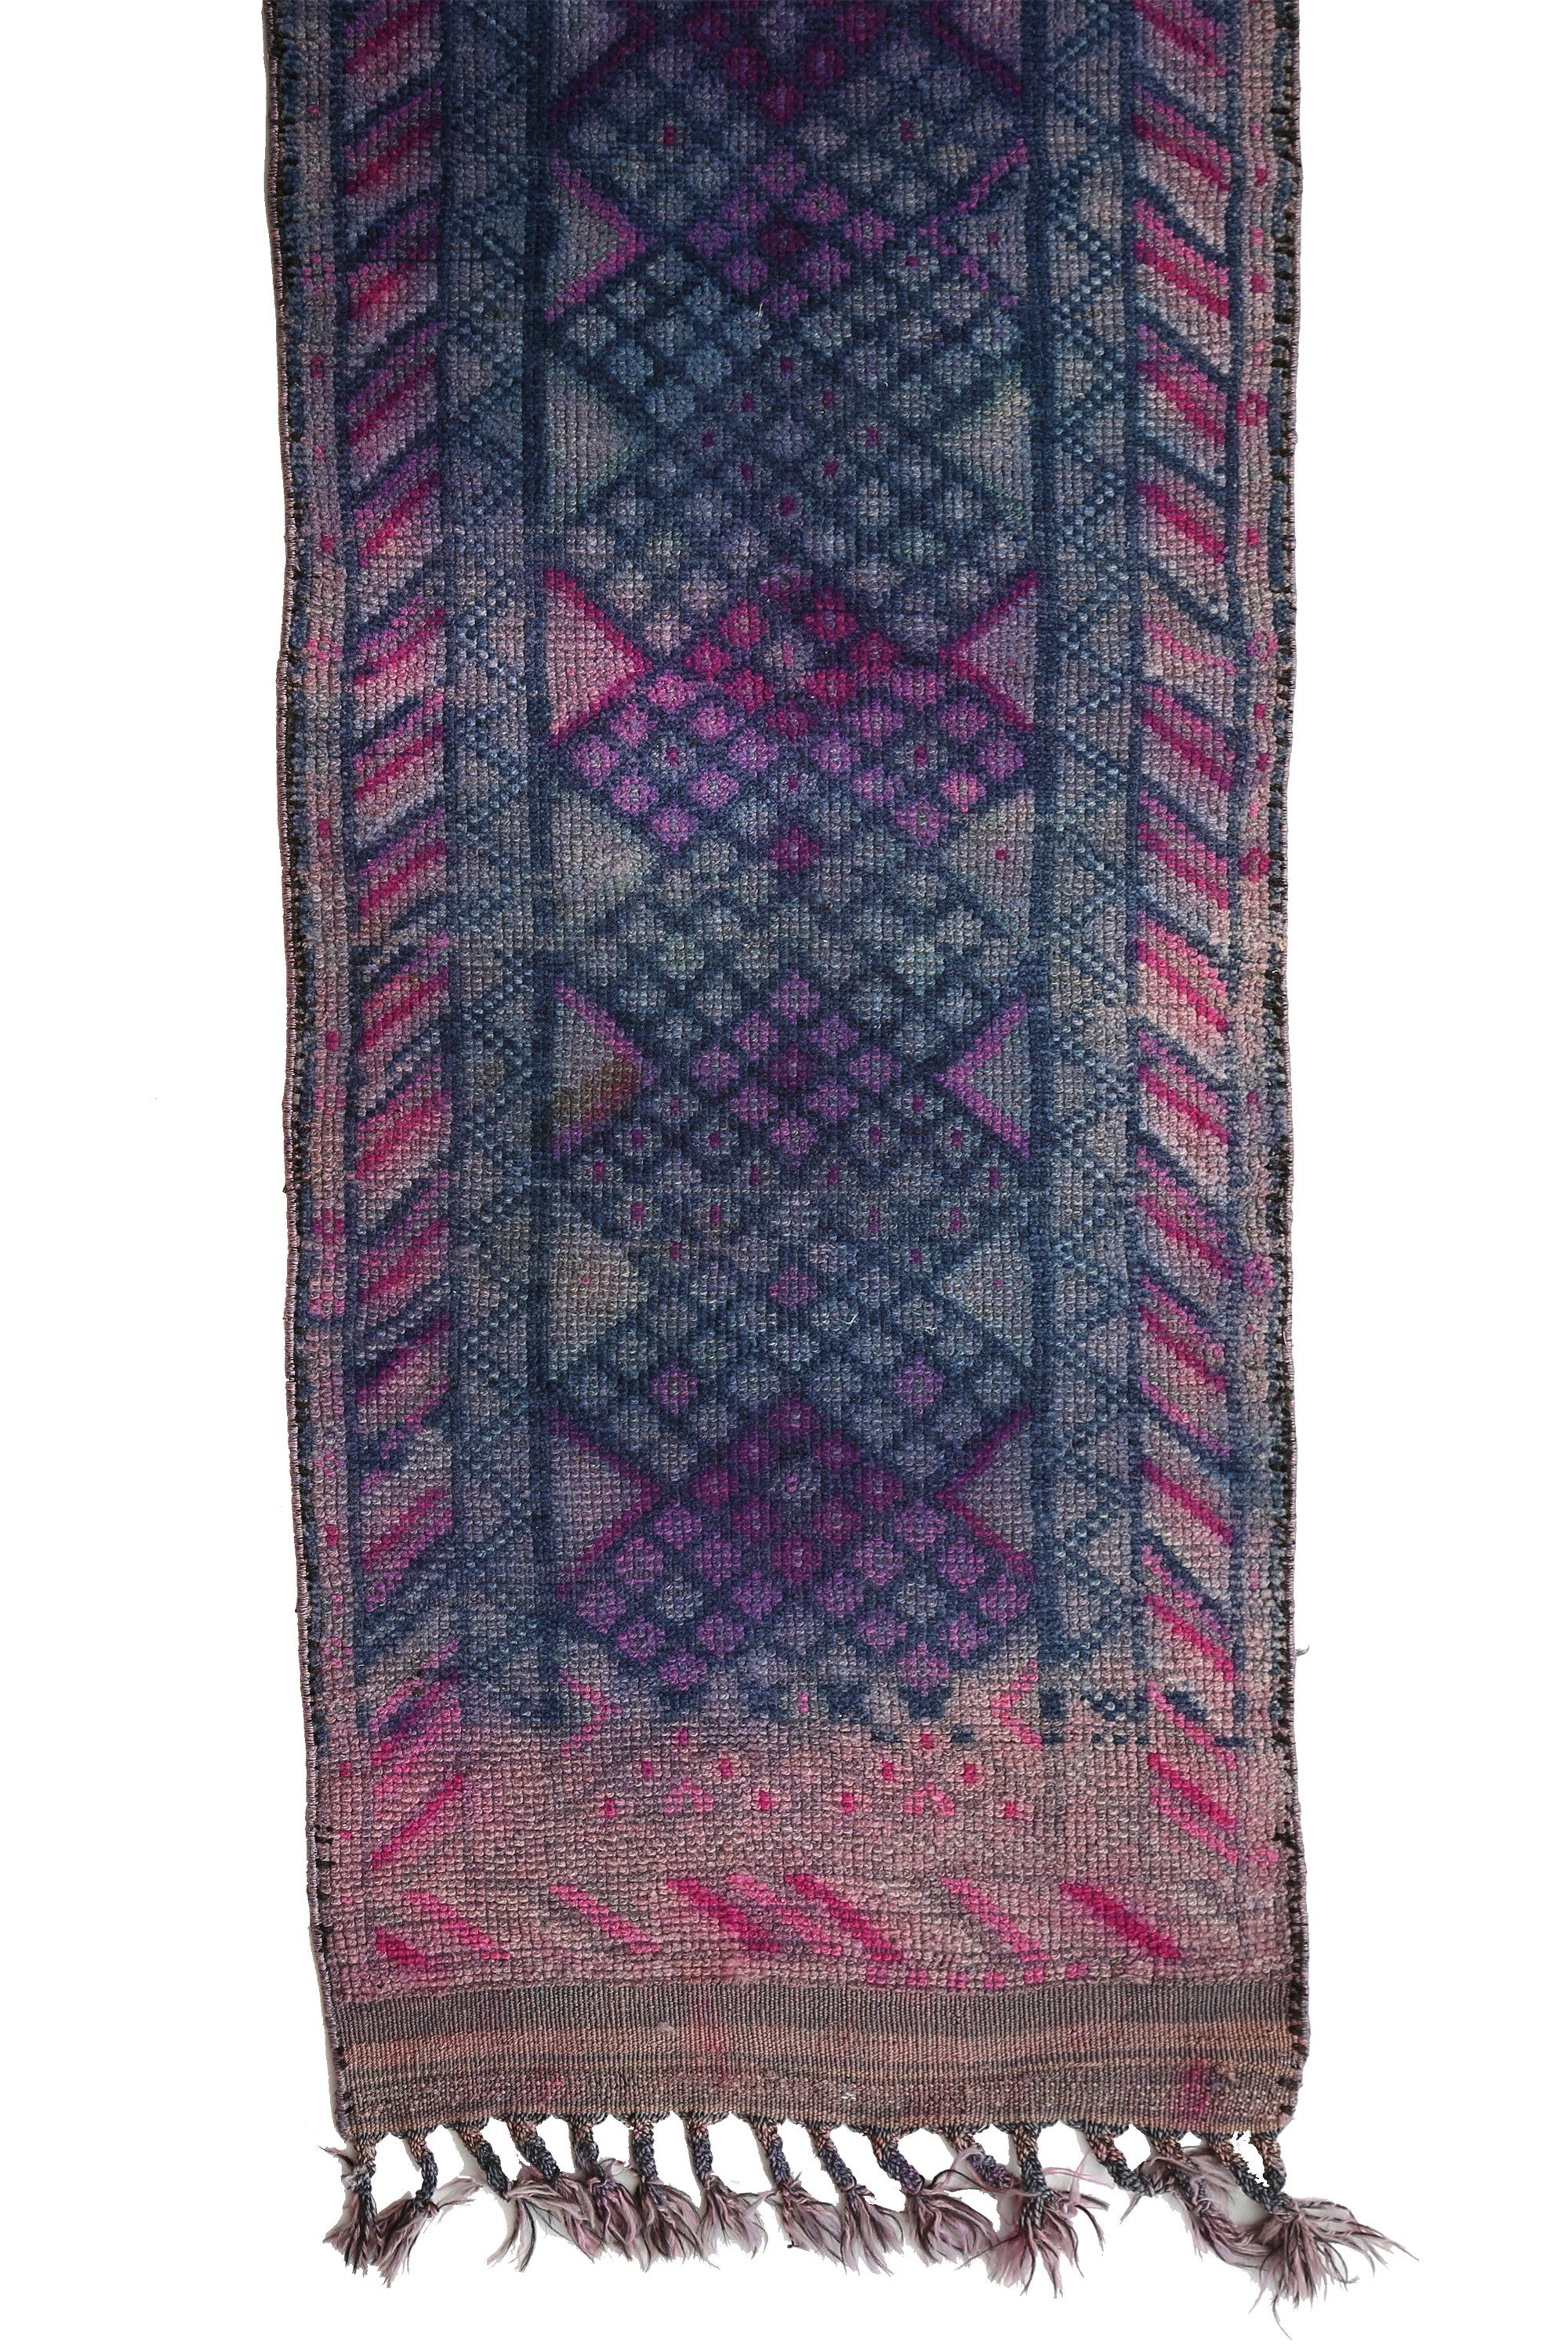 Canary Lane Tribal Antique Vintage Bluebell Rug One Of A Kind